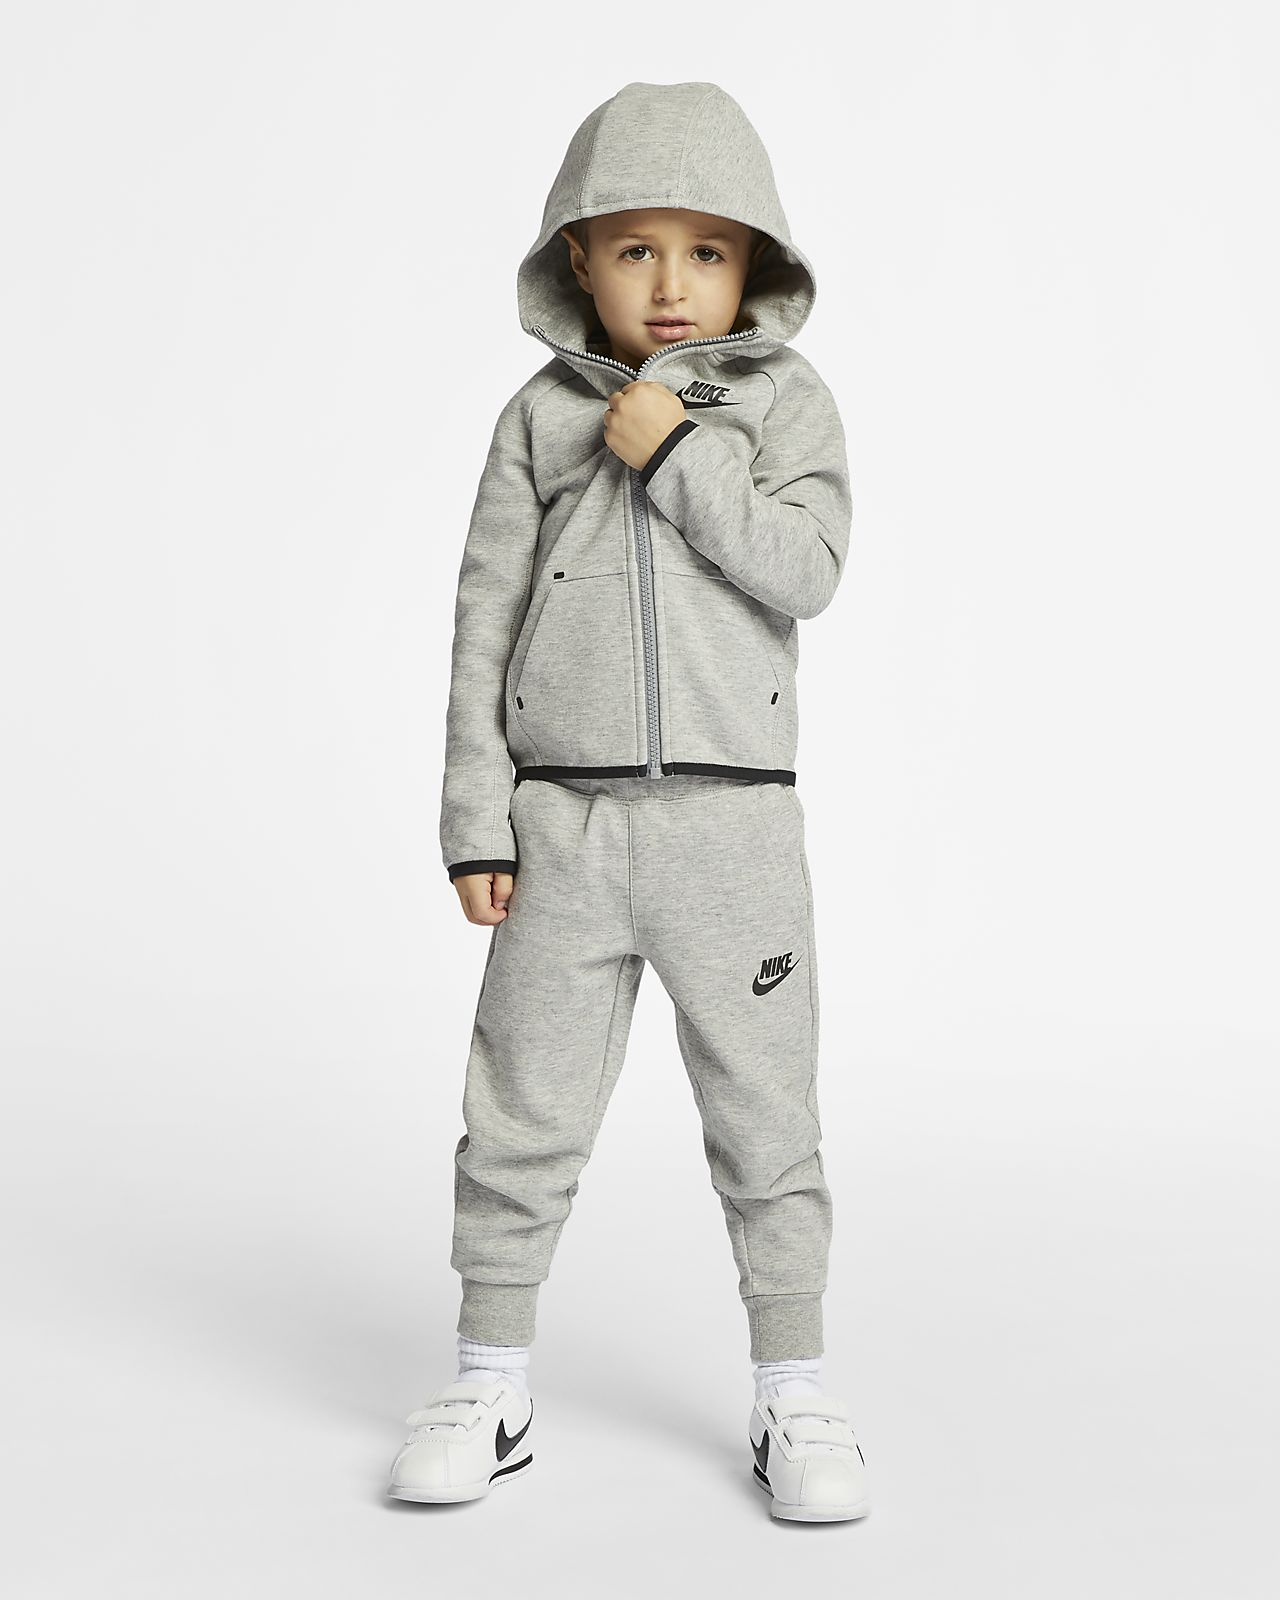 7cbf6d3a5153 Nike Sportswear Tech Fleece Toddler 2-Piece Set. Nike.com IE